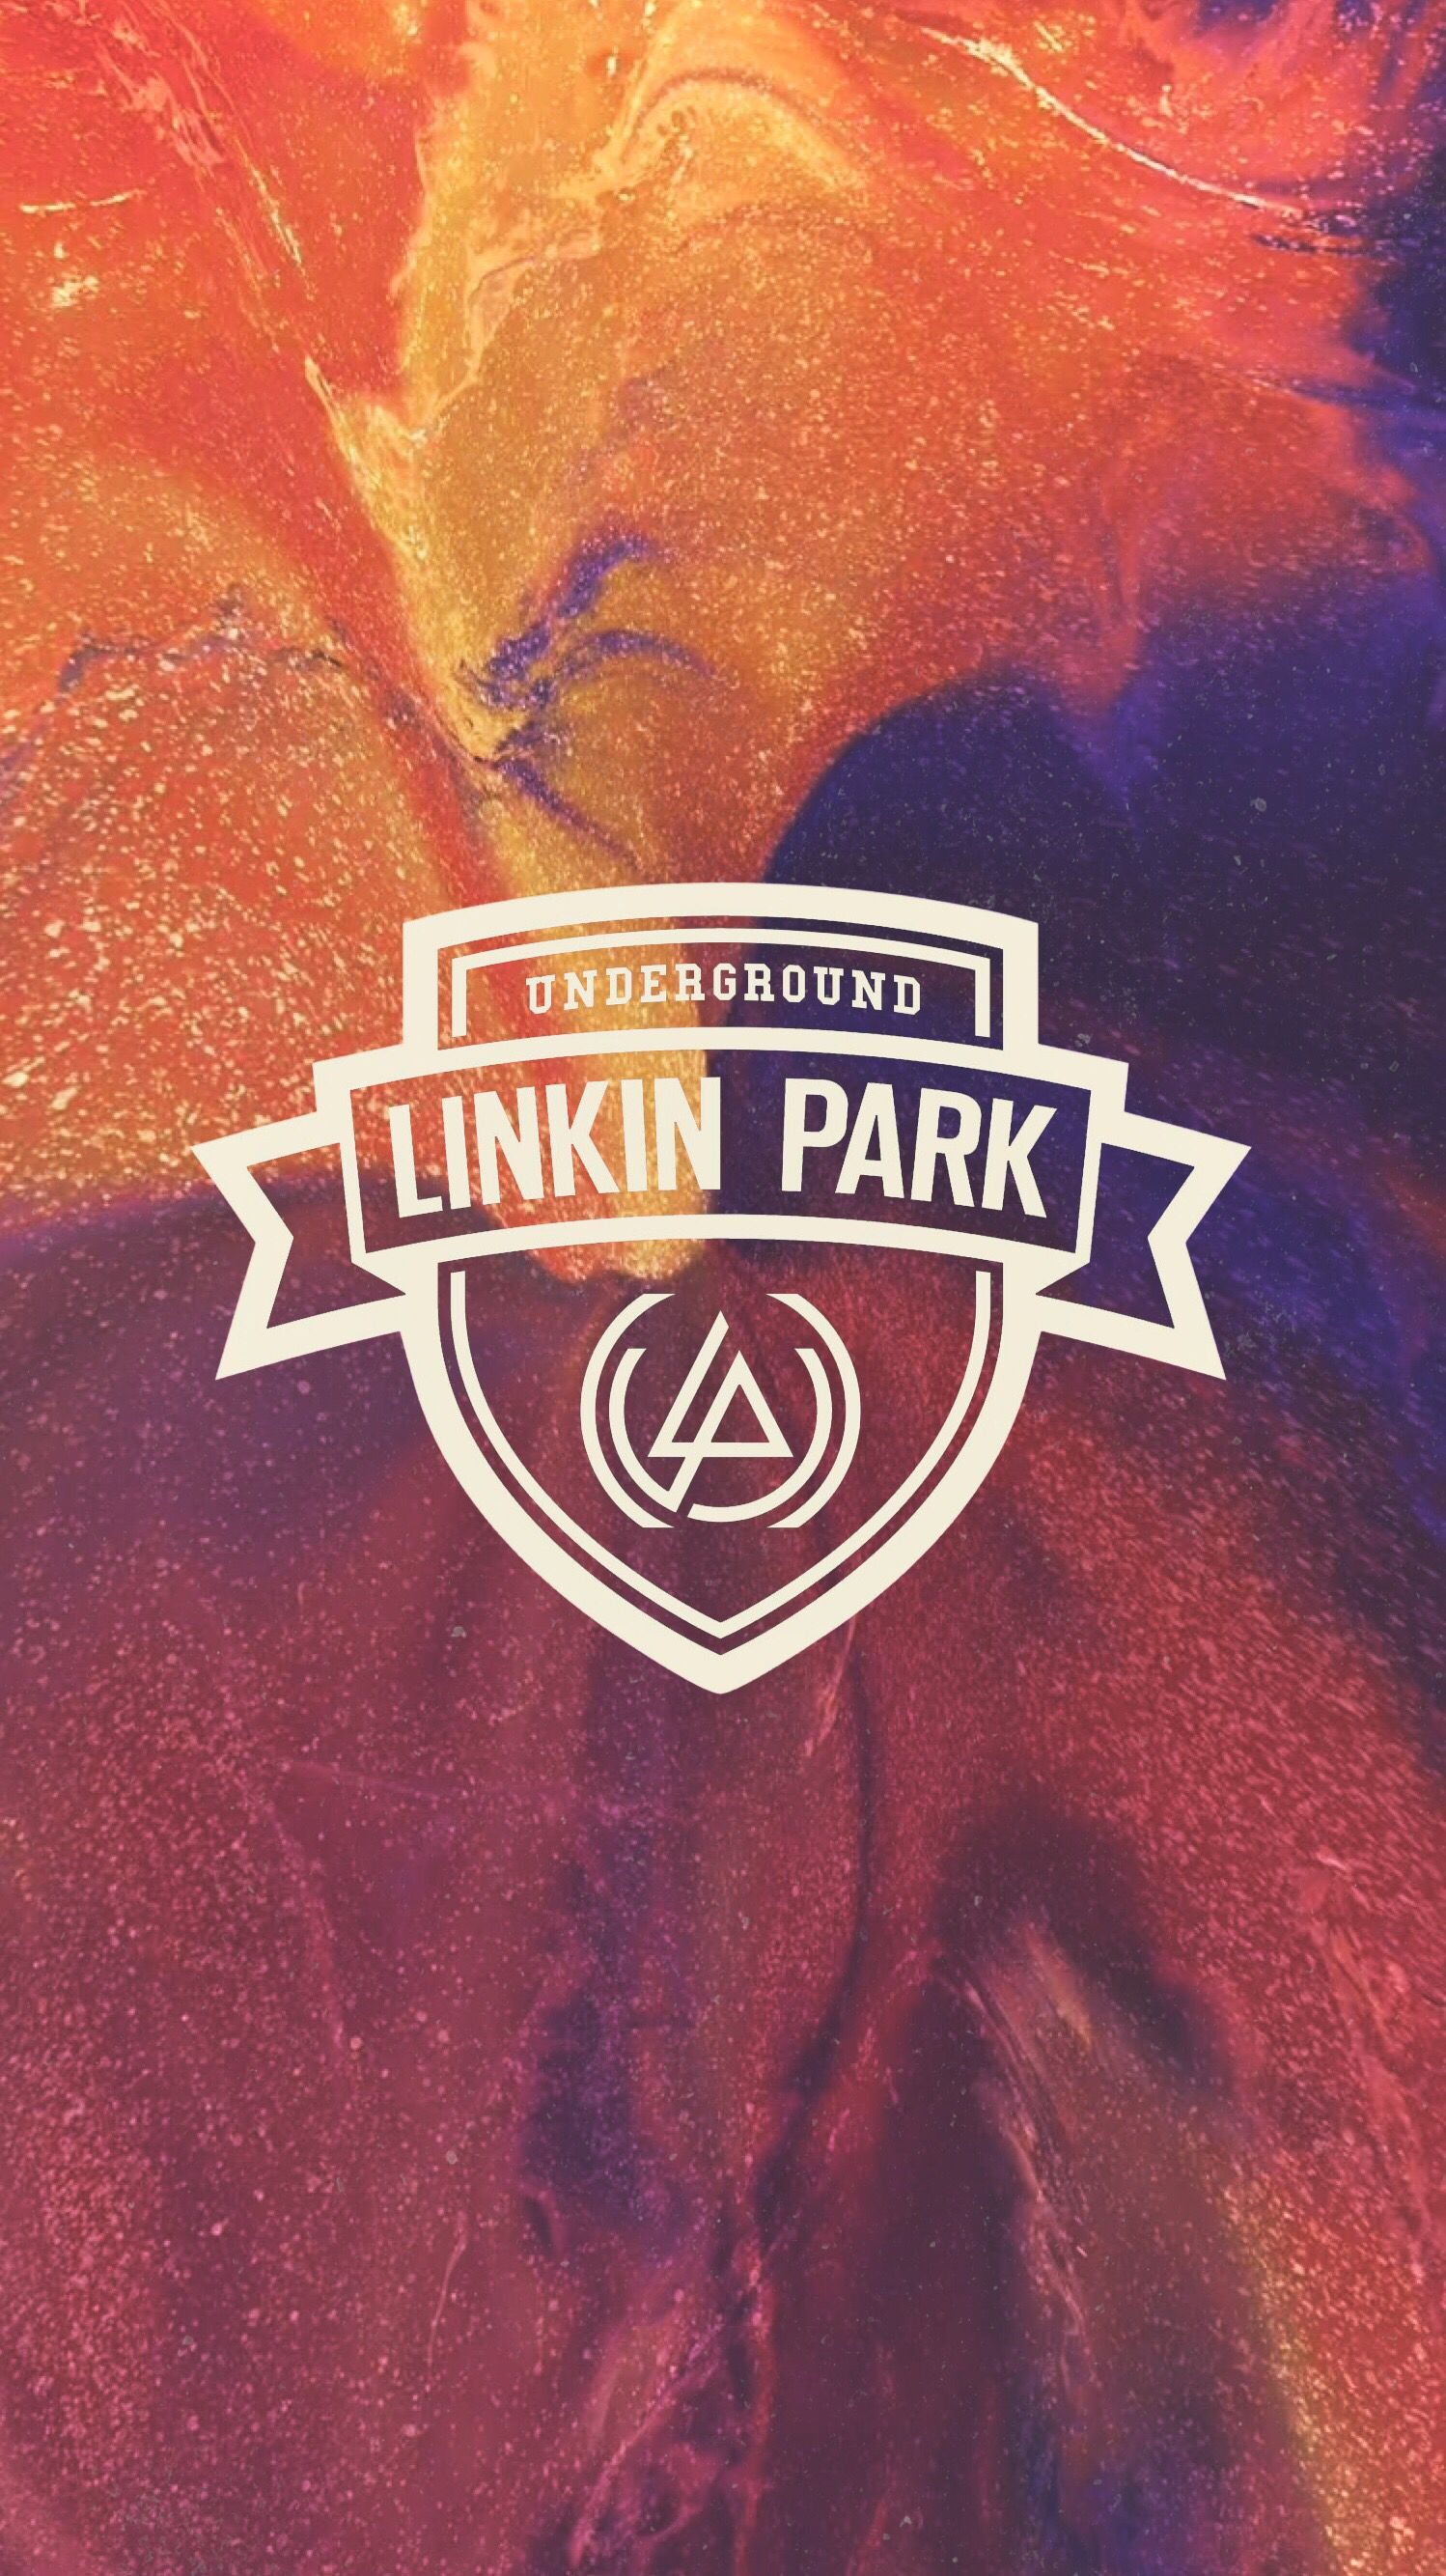 Linkin Park Wallpaper Linkinpark Mikeshinoda Lpu Wallpaper